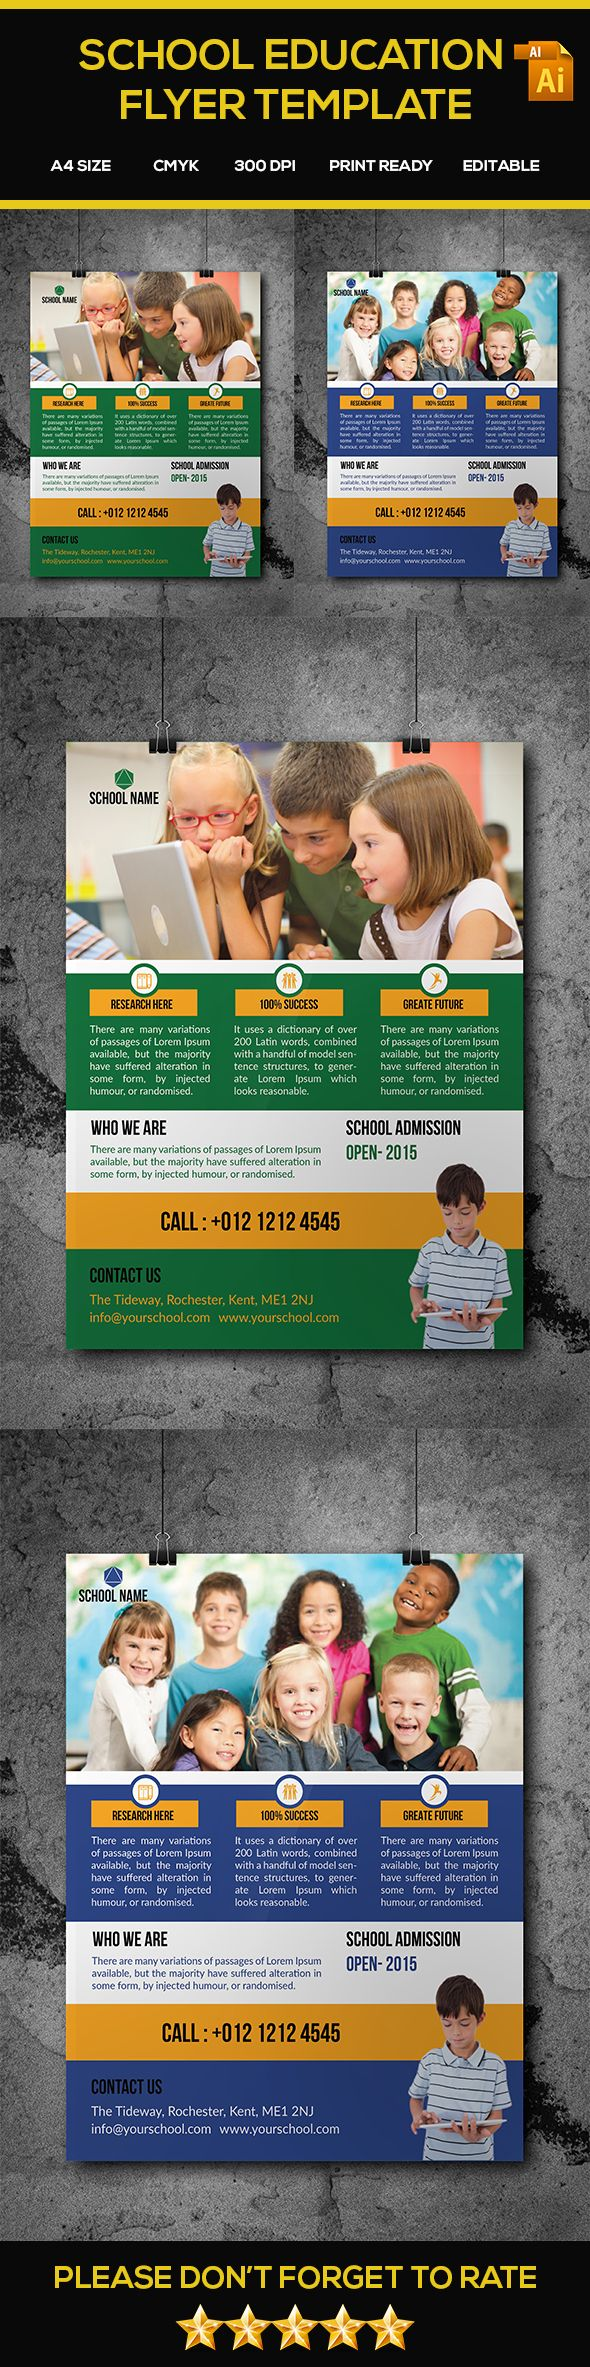 education flyer template flyer template pinterest